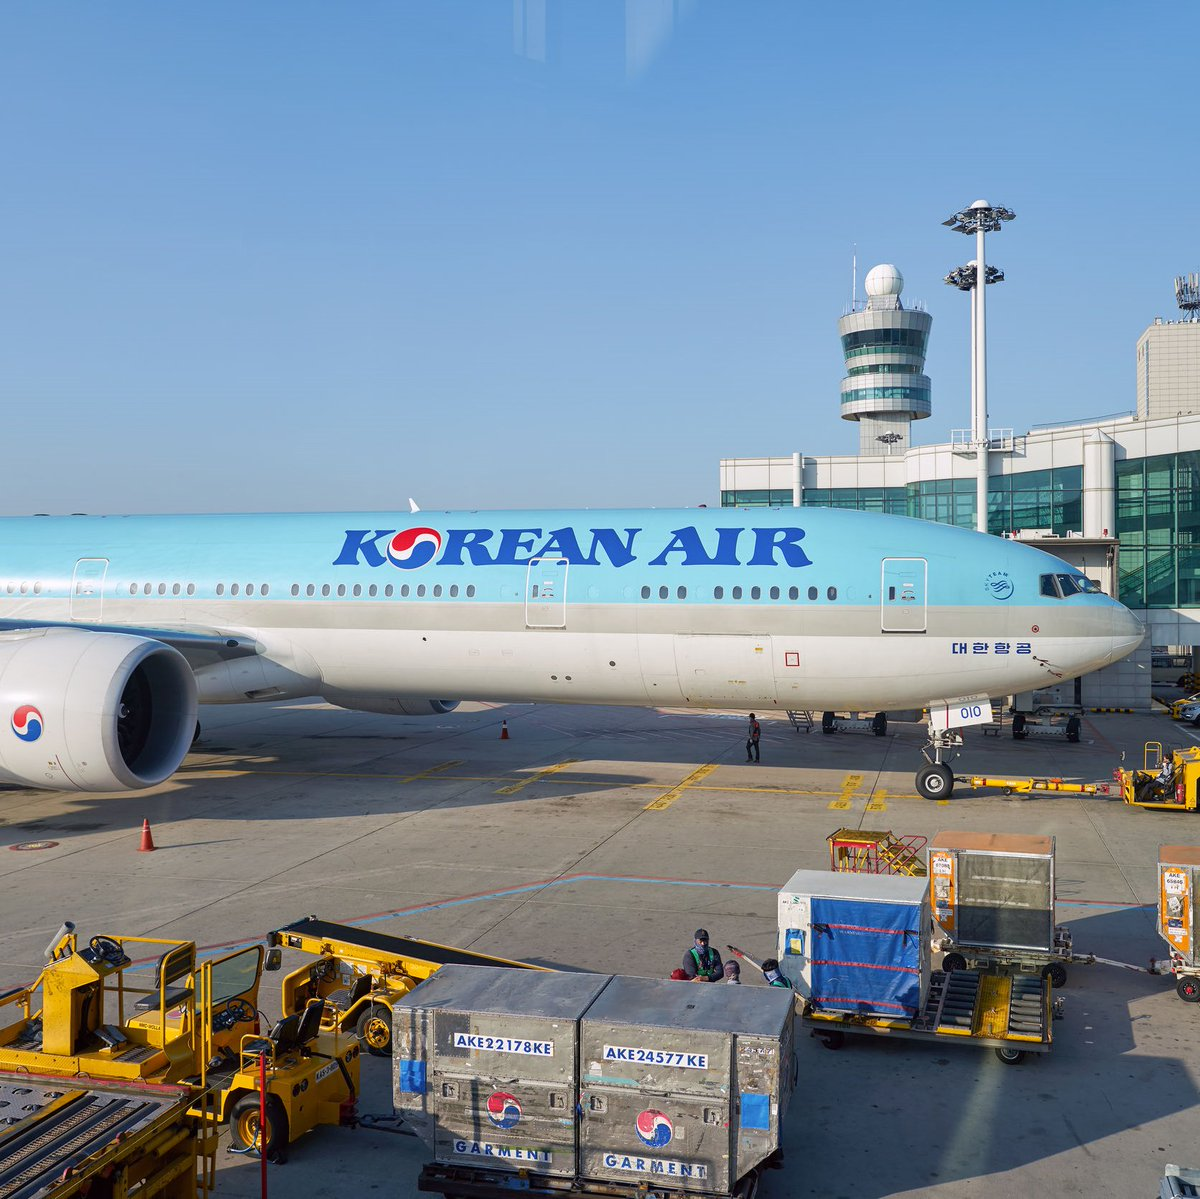 Korean air on twitter dont forget the winter flight schedule korean air on twitter dont forget the winter flight schedule starts on this coming sunday oct 29 please visit httpstuxlxunvvsd for more publicscrutiny Images